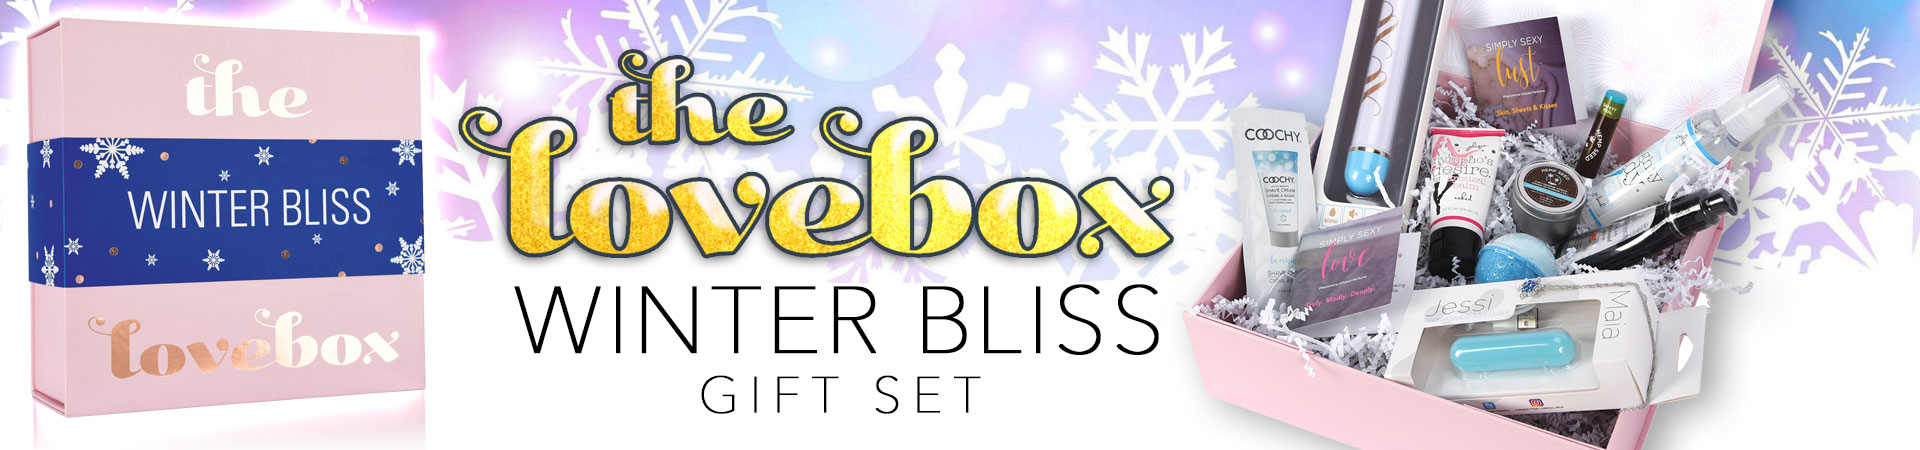 Great Gift Idea! Winter Bliss Lovebox Curated Collection Of Pleasure Products